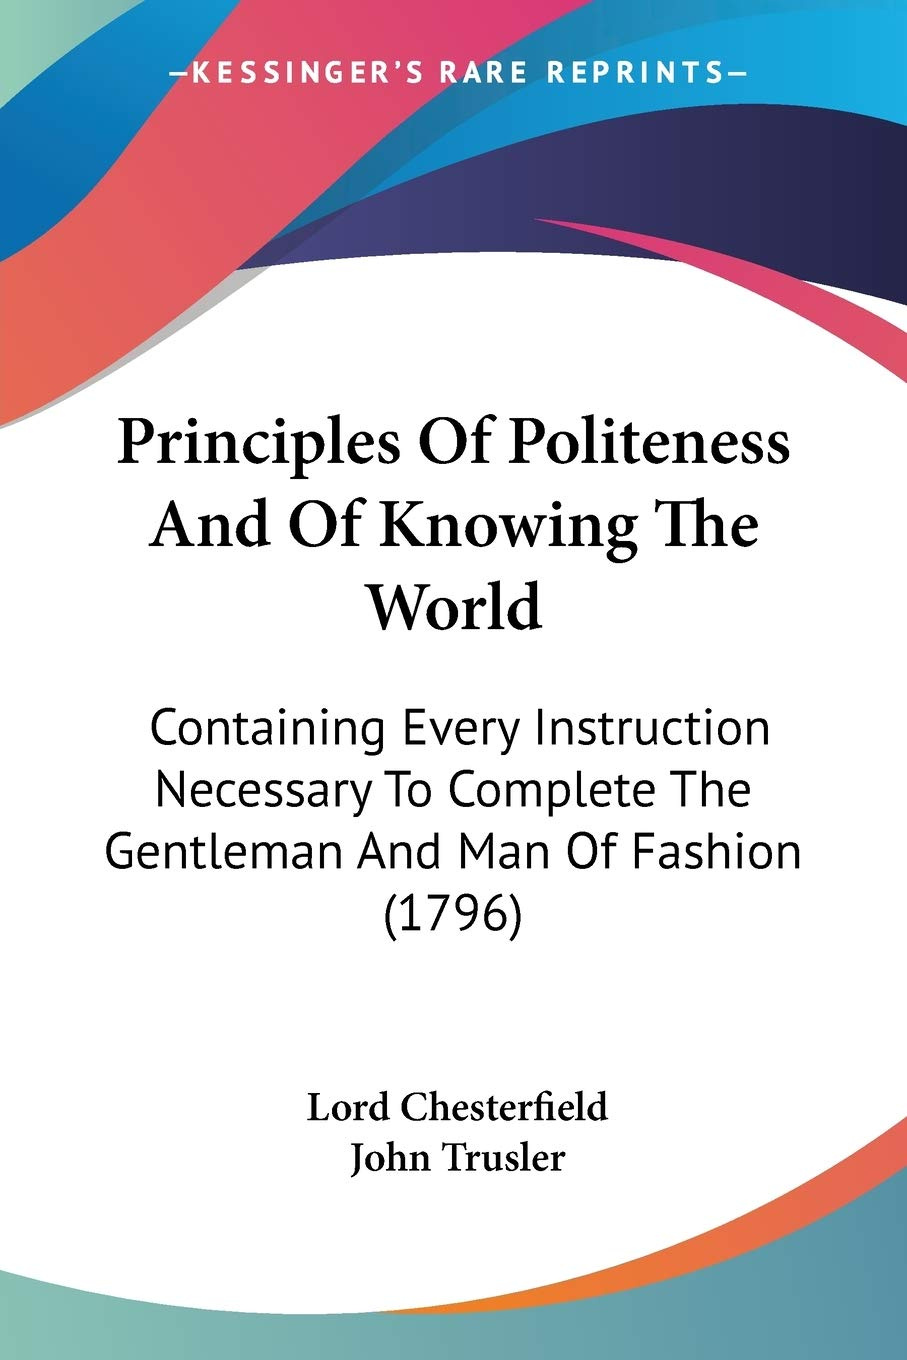 Principles Of Politeness And Of Knowing The World Containing Every Instruction Necessary To Complete The Gentleman And Man Of Fashion 1796 Amazon In Chesterfield Lord Books